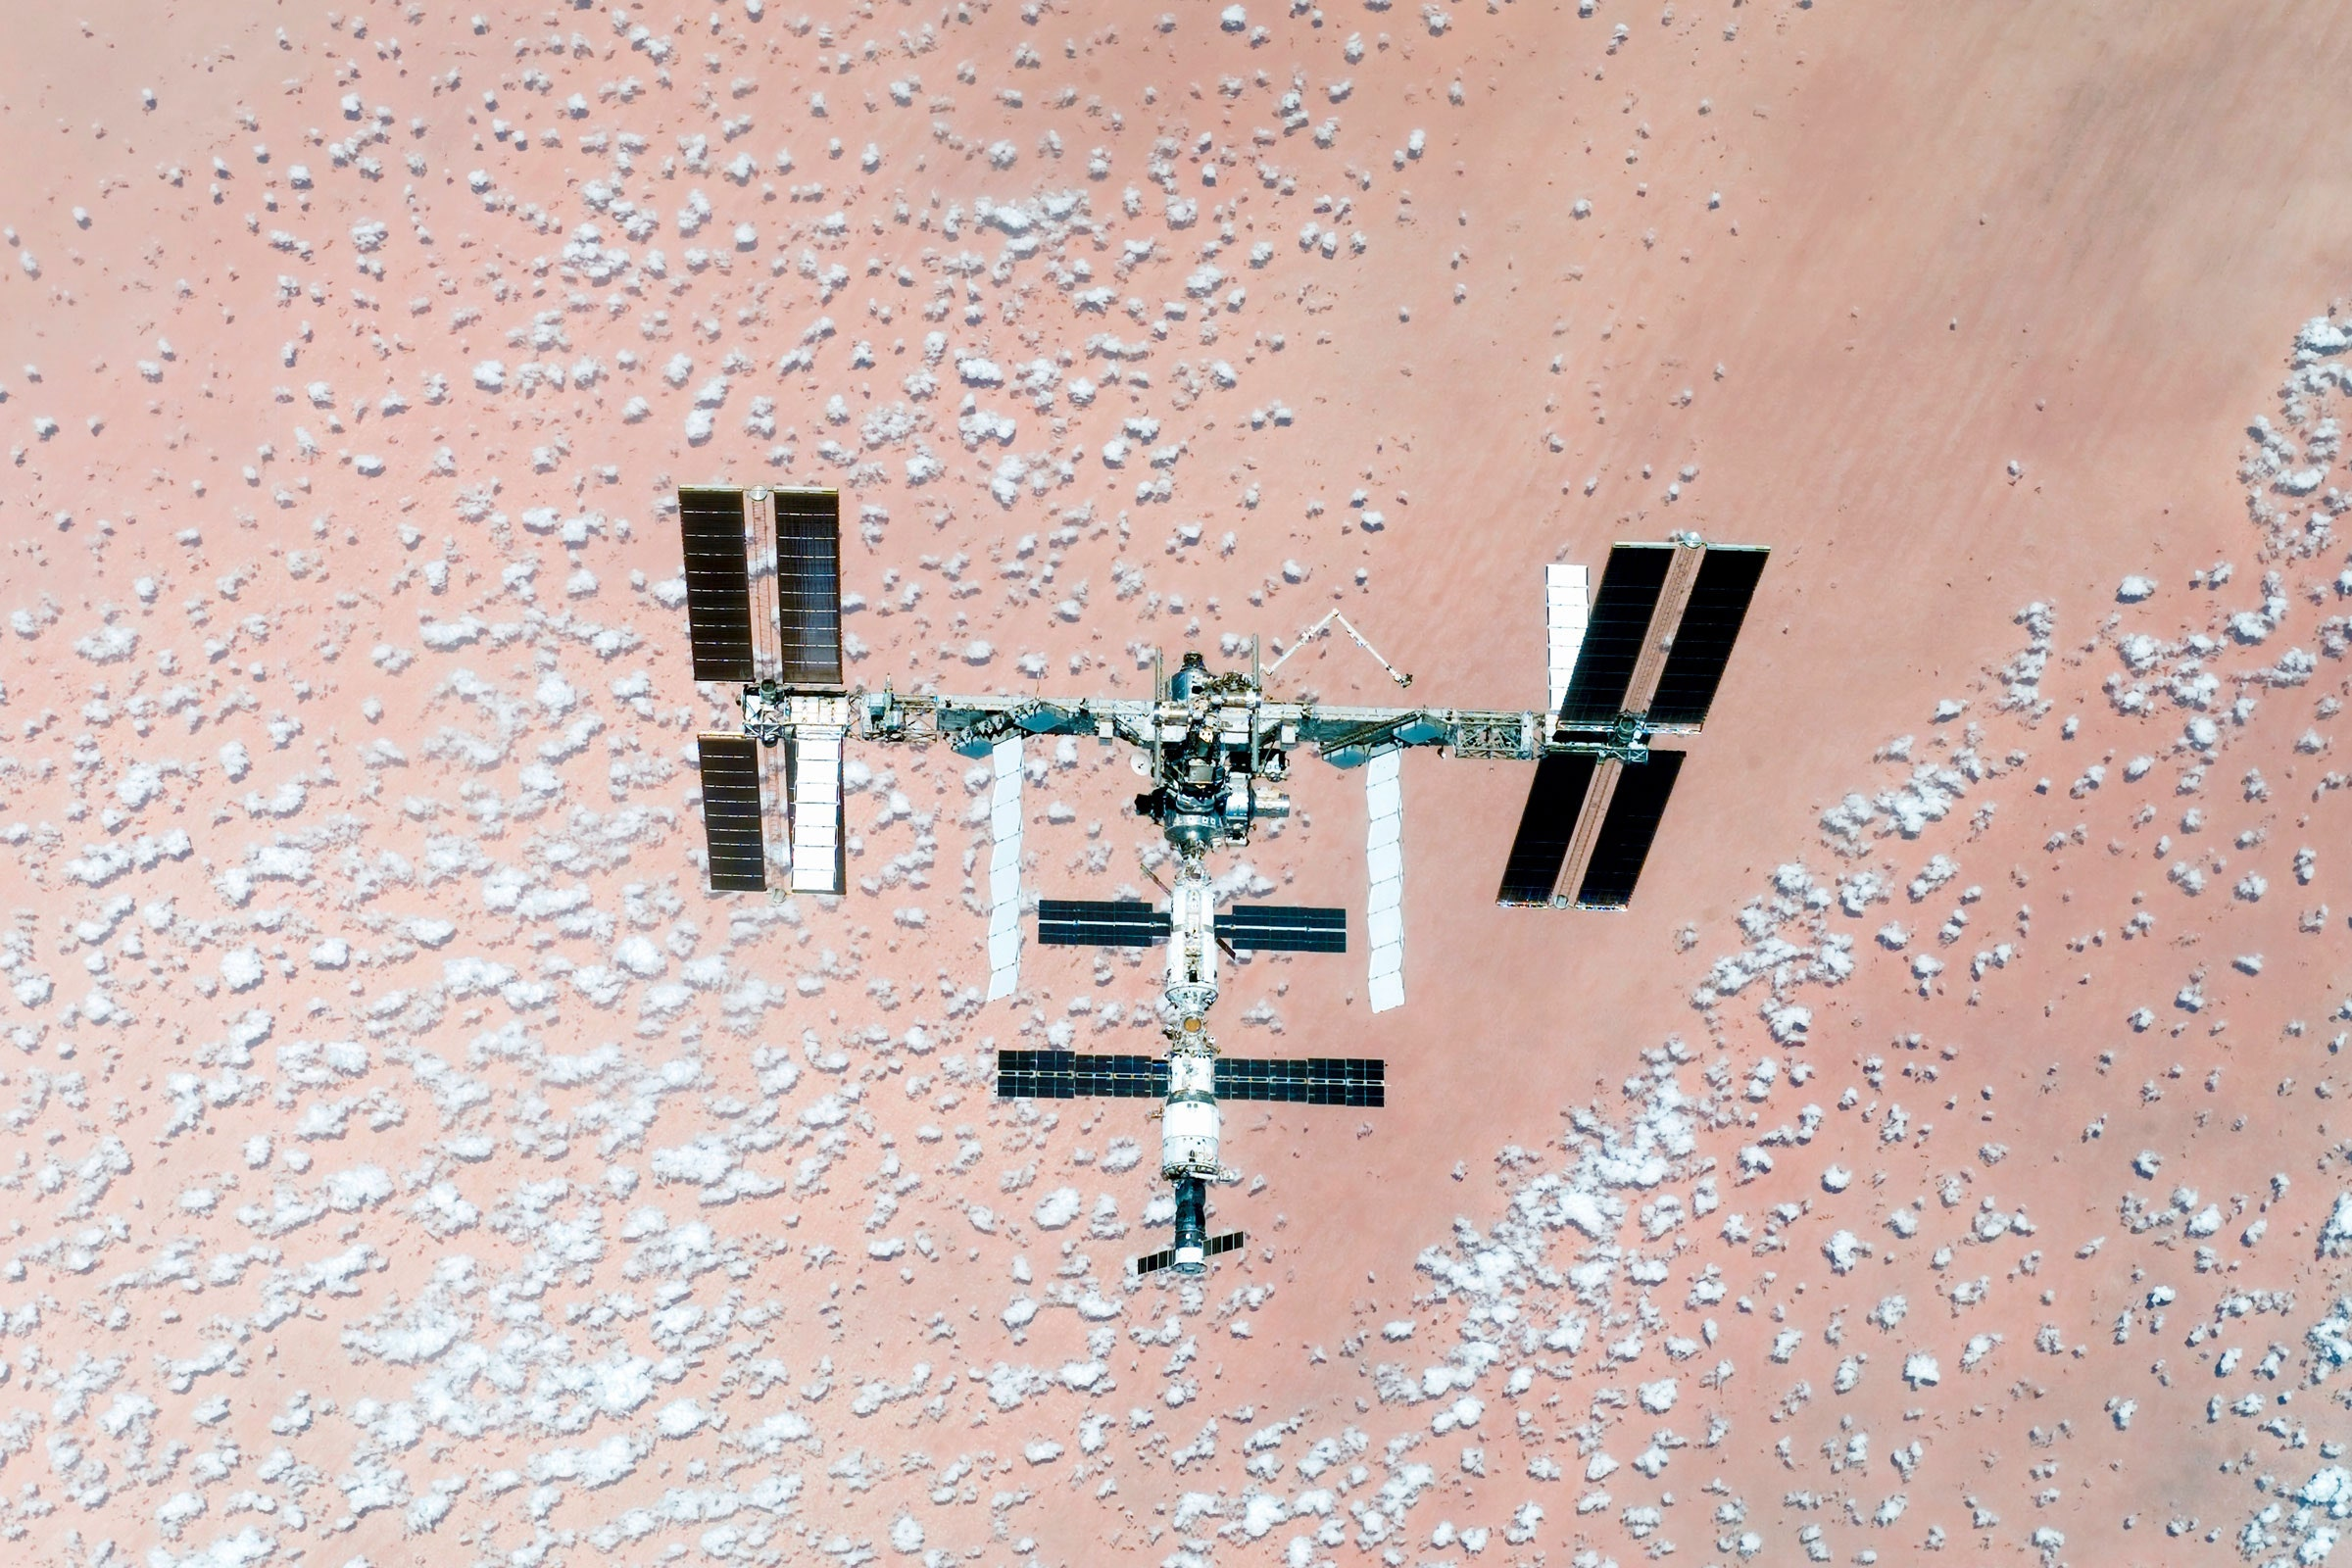 Sneaky New Bacteria on the ISS Could Build a Future on Mars